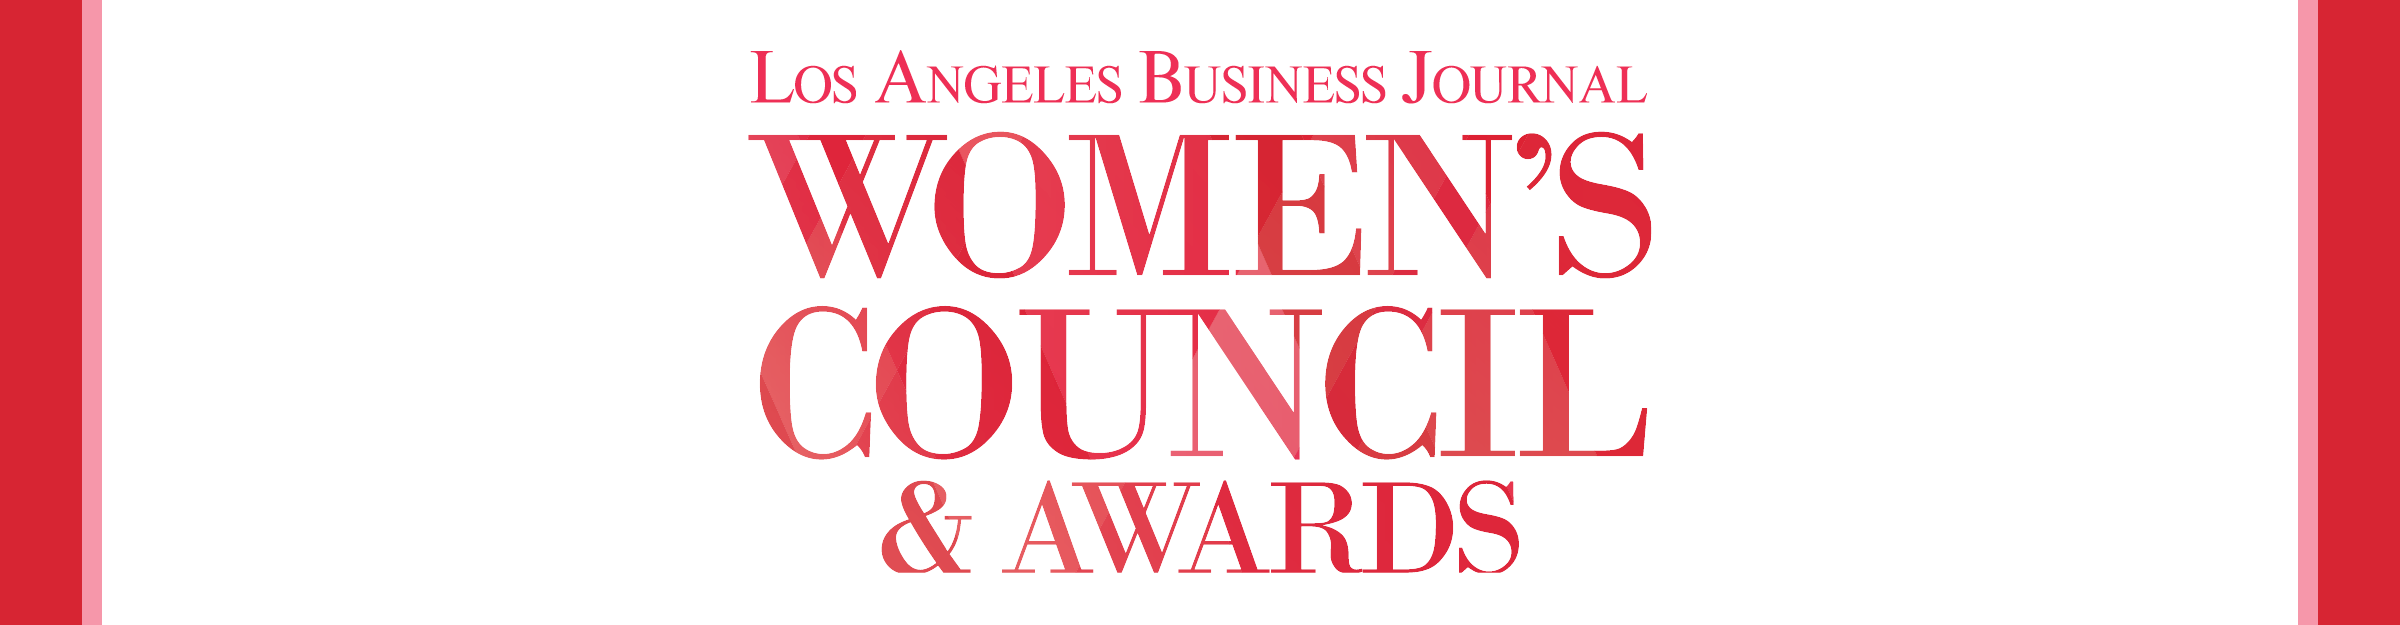 Women's Council & Awards Awards Awards Event Banner